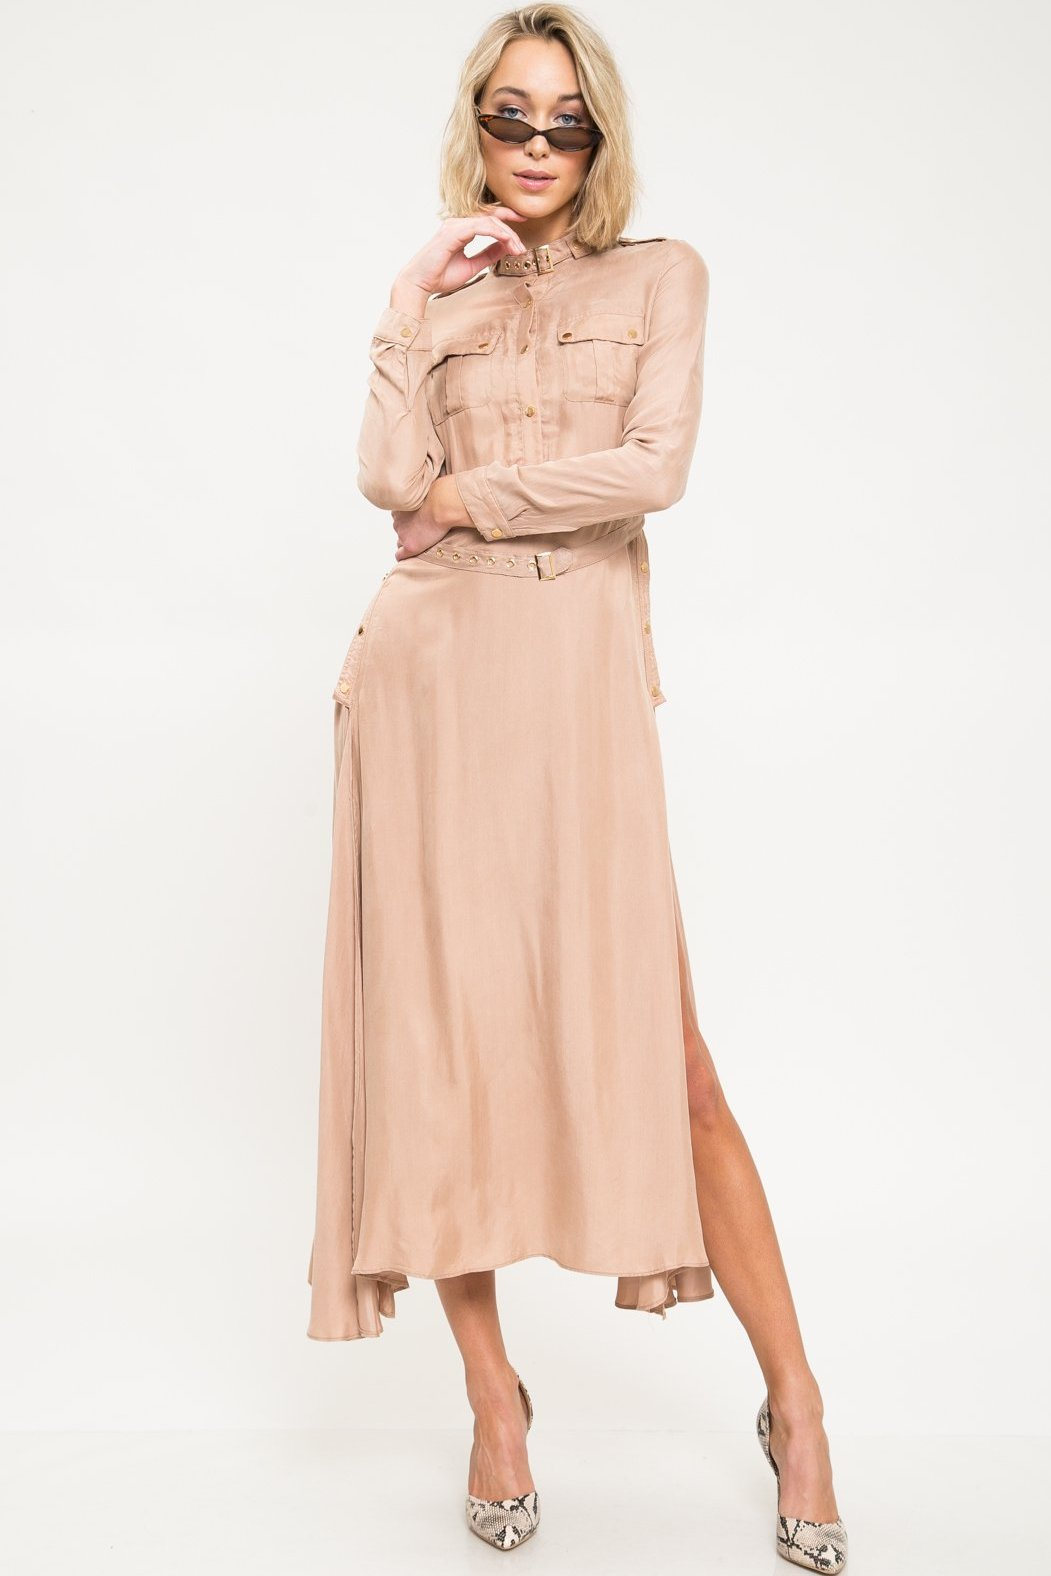 Noelle Long Sleeve Cupro Maxi Dress - Geegeebae